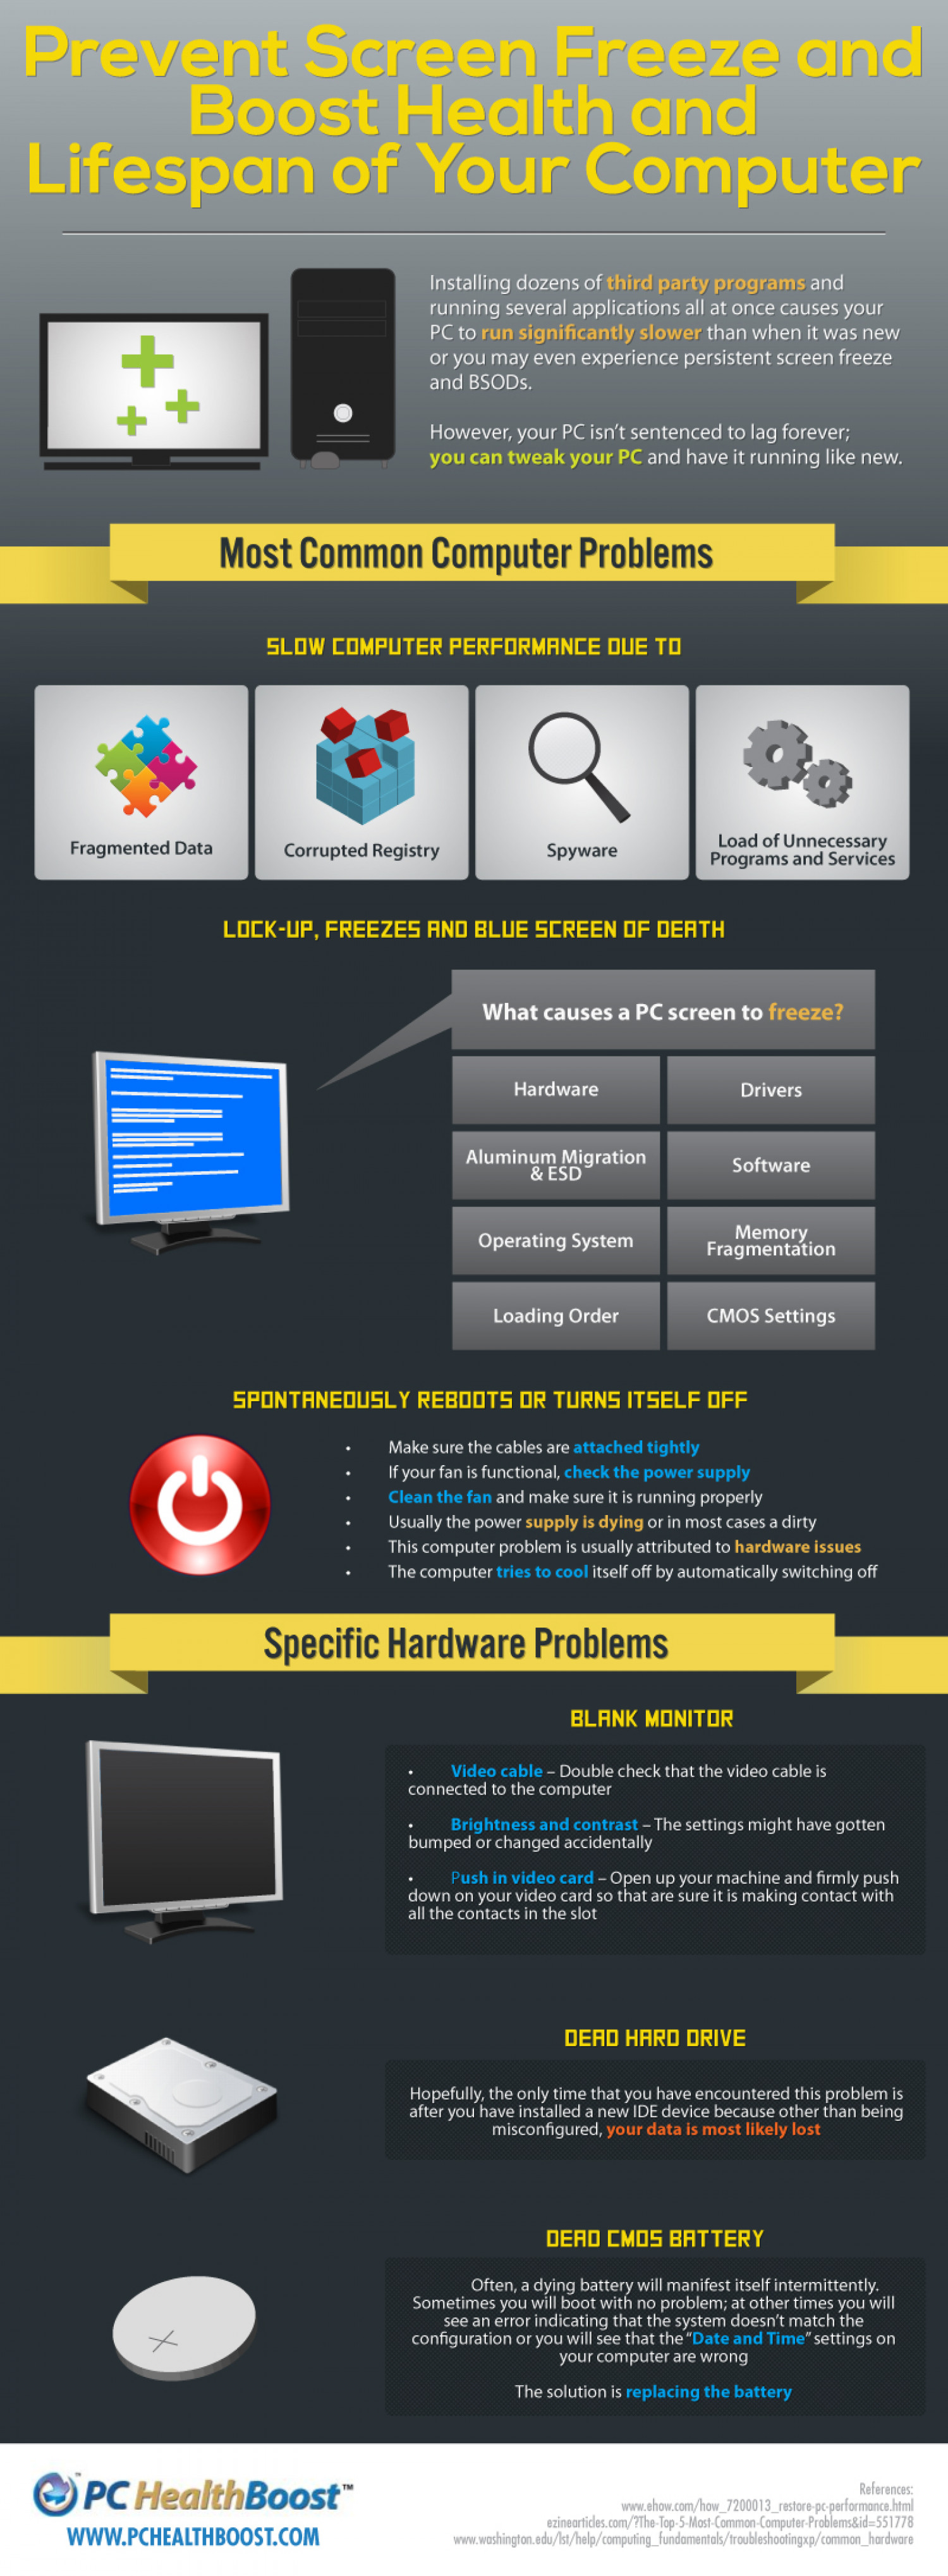 Dealing With Common Computer Problems to Maximize Performance Infographic